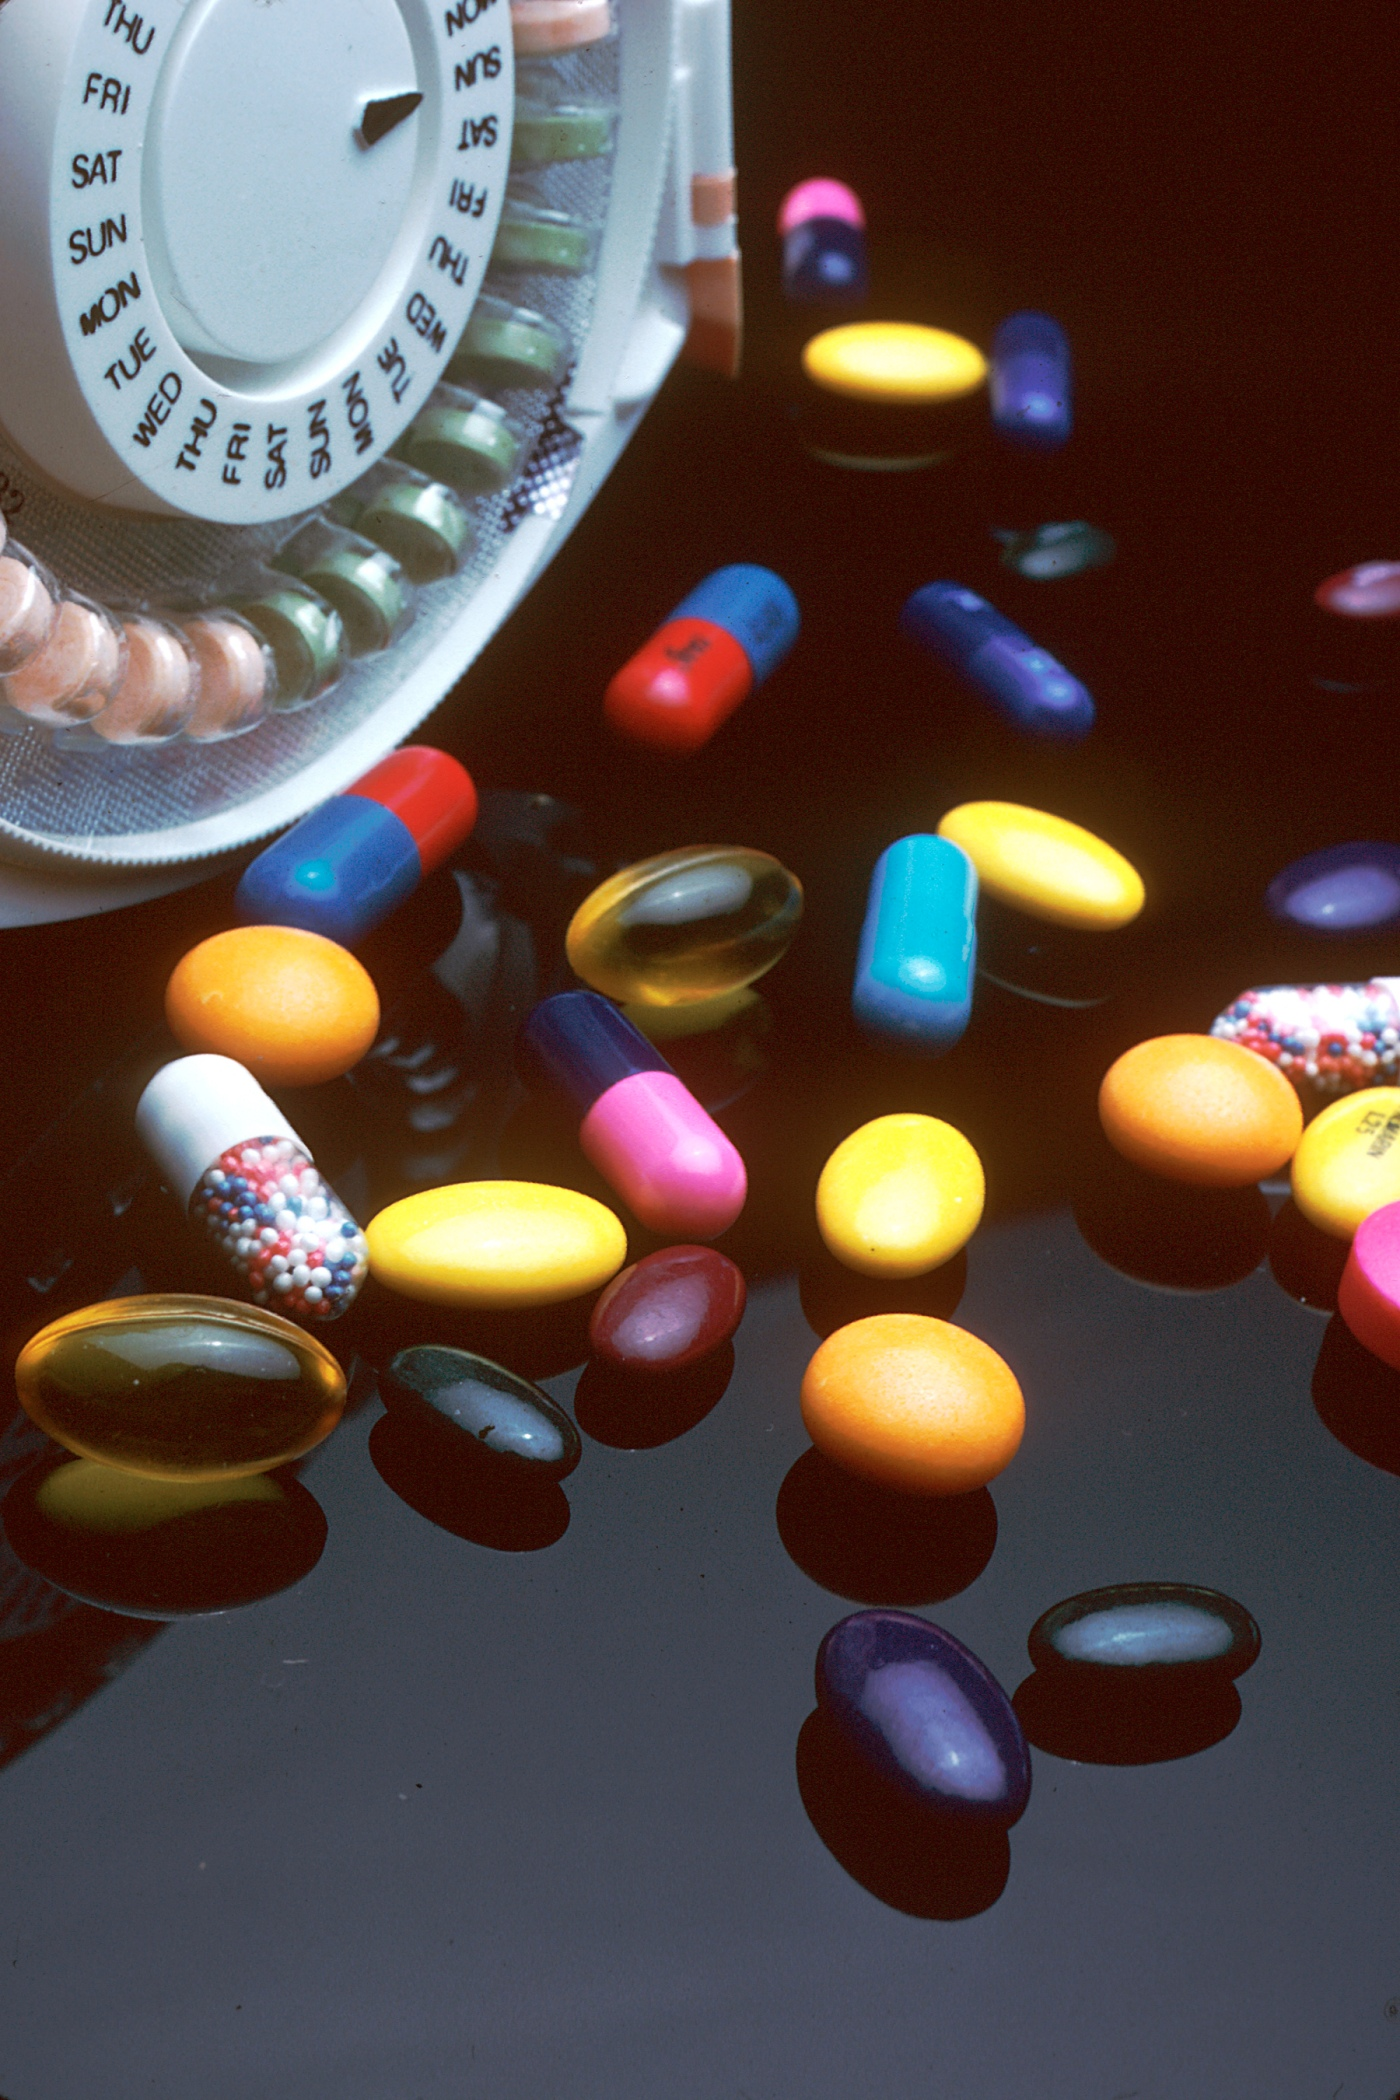 Video Games: Self Harm or Self help? A picture of drugs.